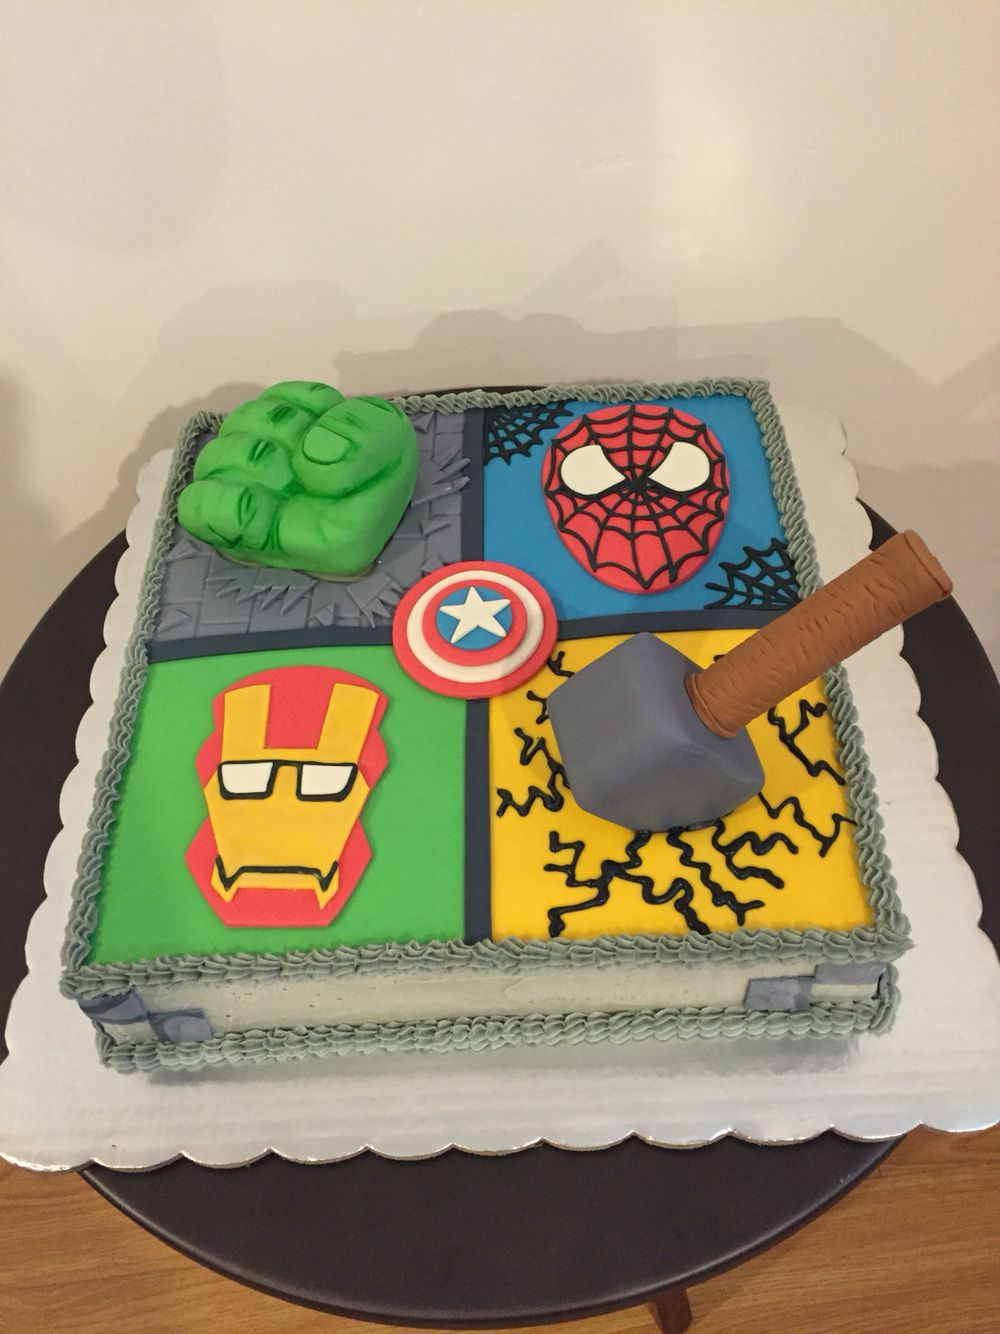 S per hero avengers cake chocolate nutella hulk spiderman - Decoracion piso hombre ...